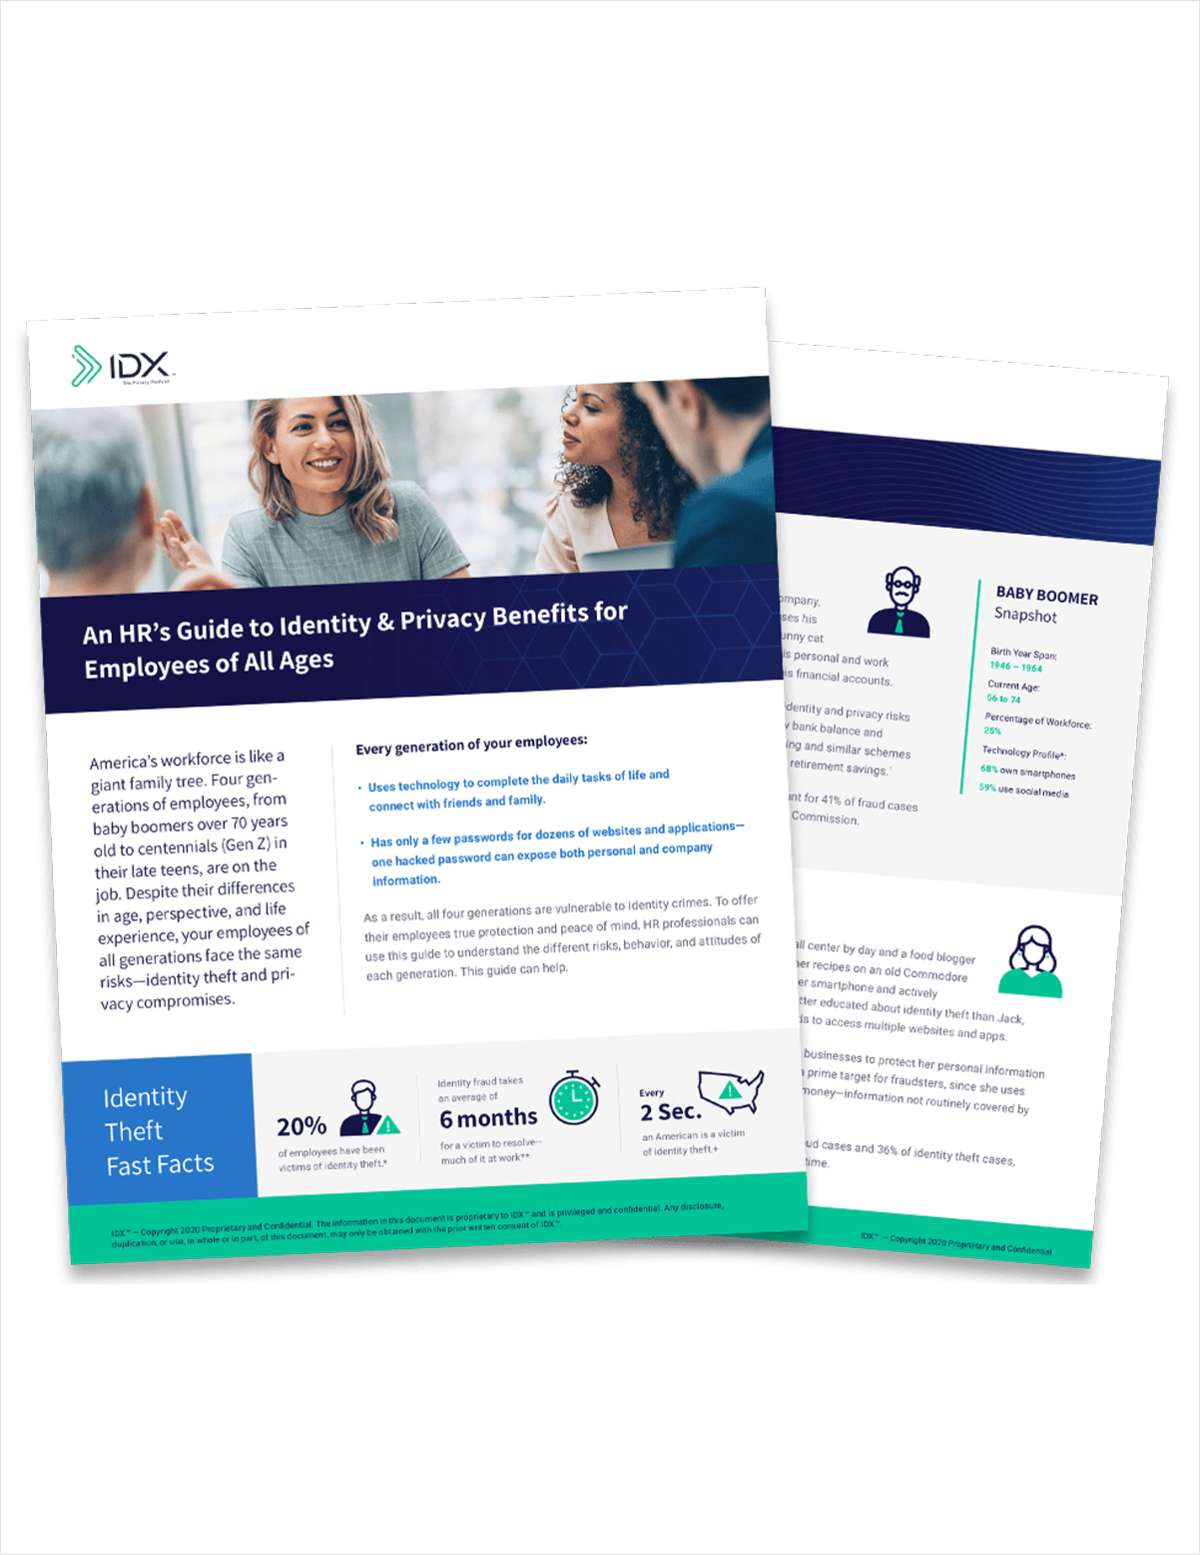 HR's Guide to Identity and Privacy Benefits for Employees of All Ages